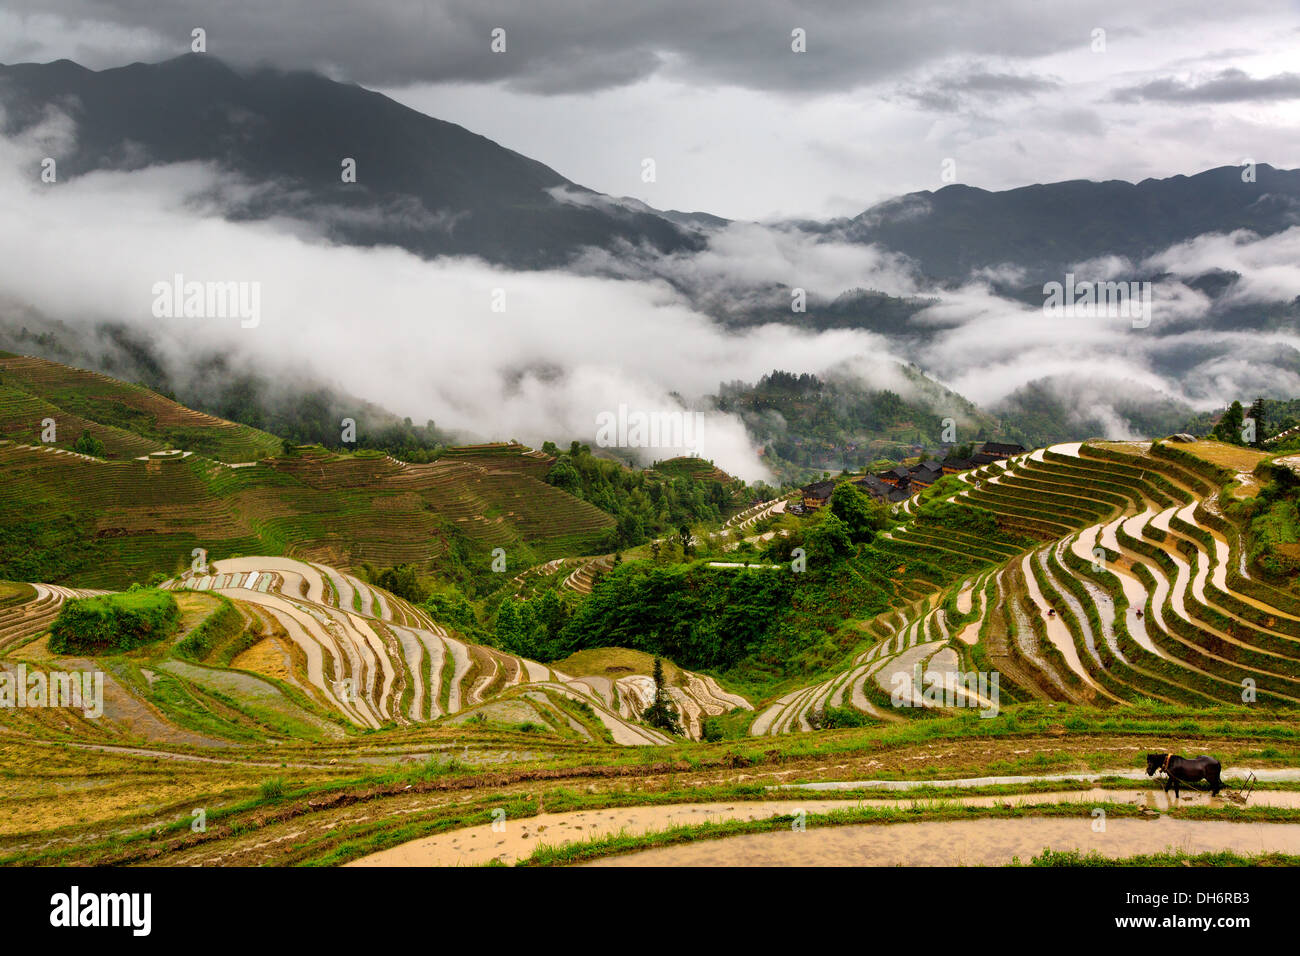 View of Longji rice terraces in Guangxi province, China Stock Photo